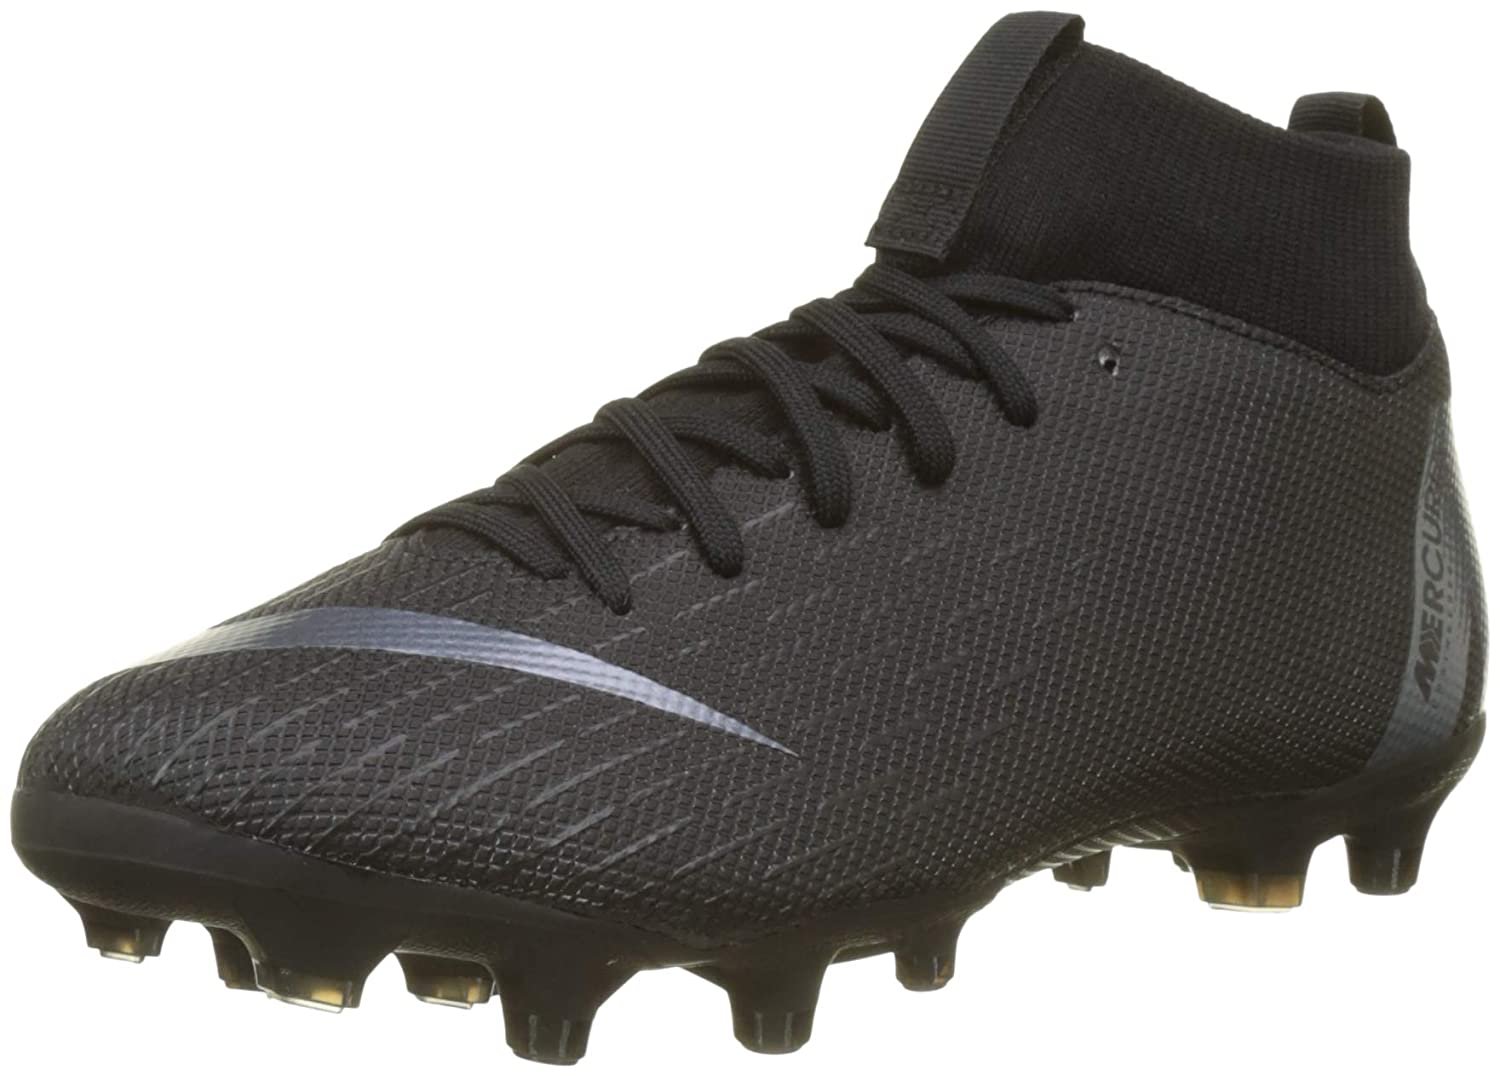 size 40 67ca0 d6ec5 Nike JR Mercurial Superfly 6 Academy GS MG Soccer Cleat (Black) (4Y)